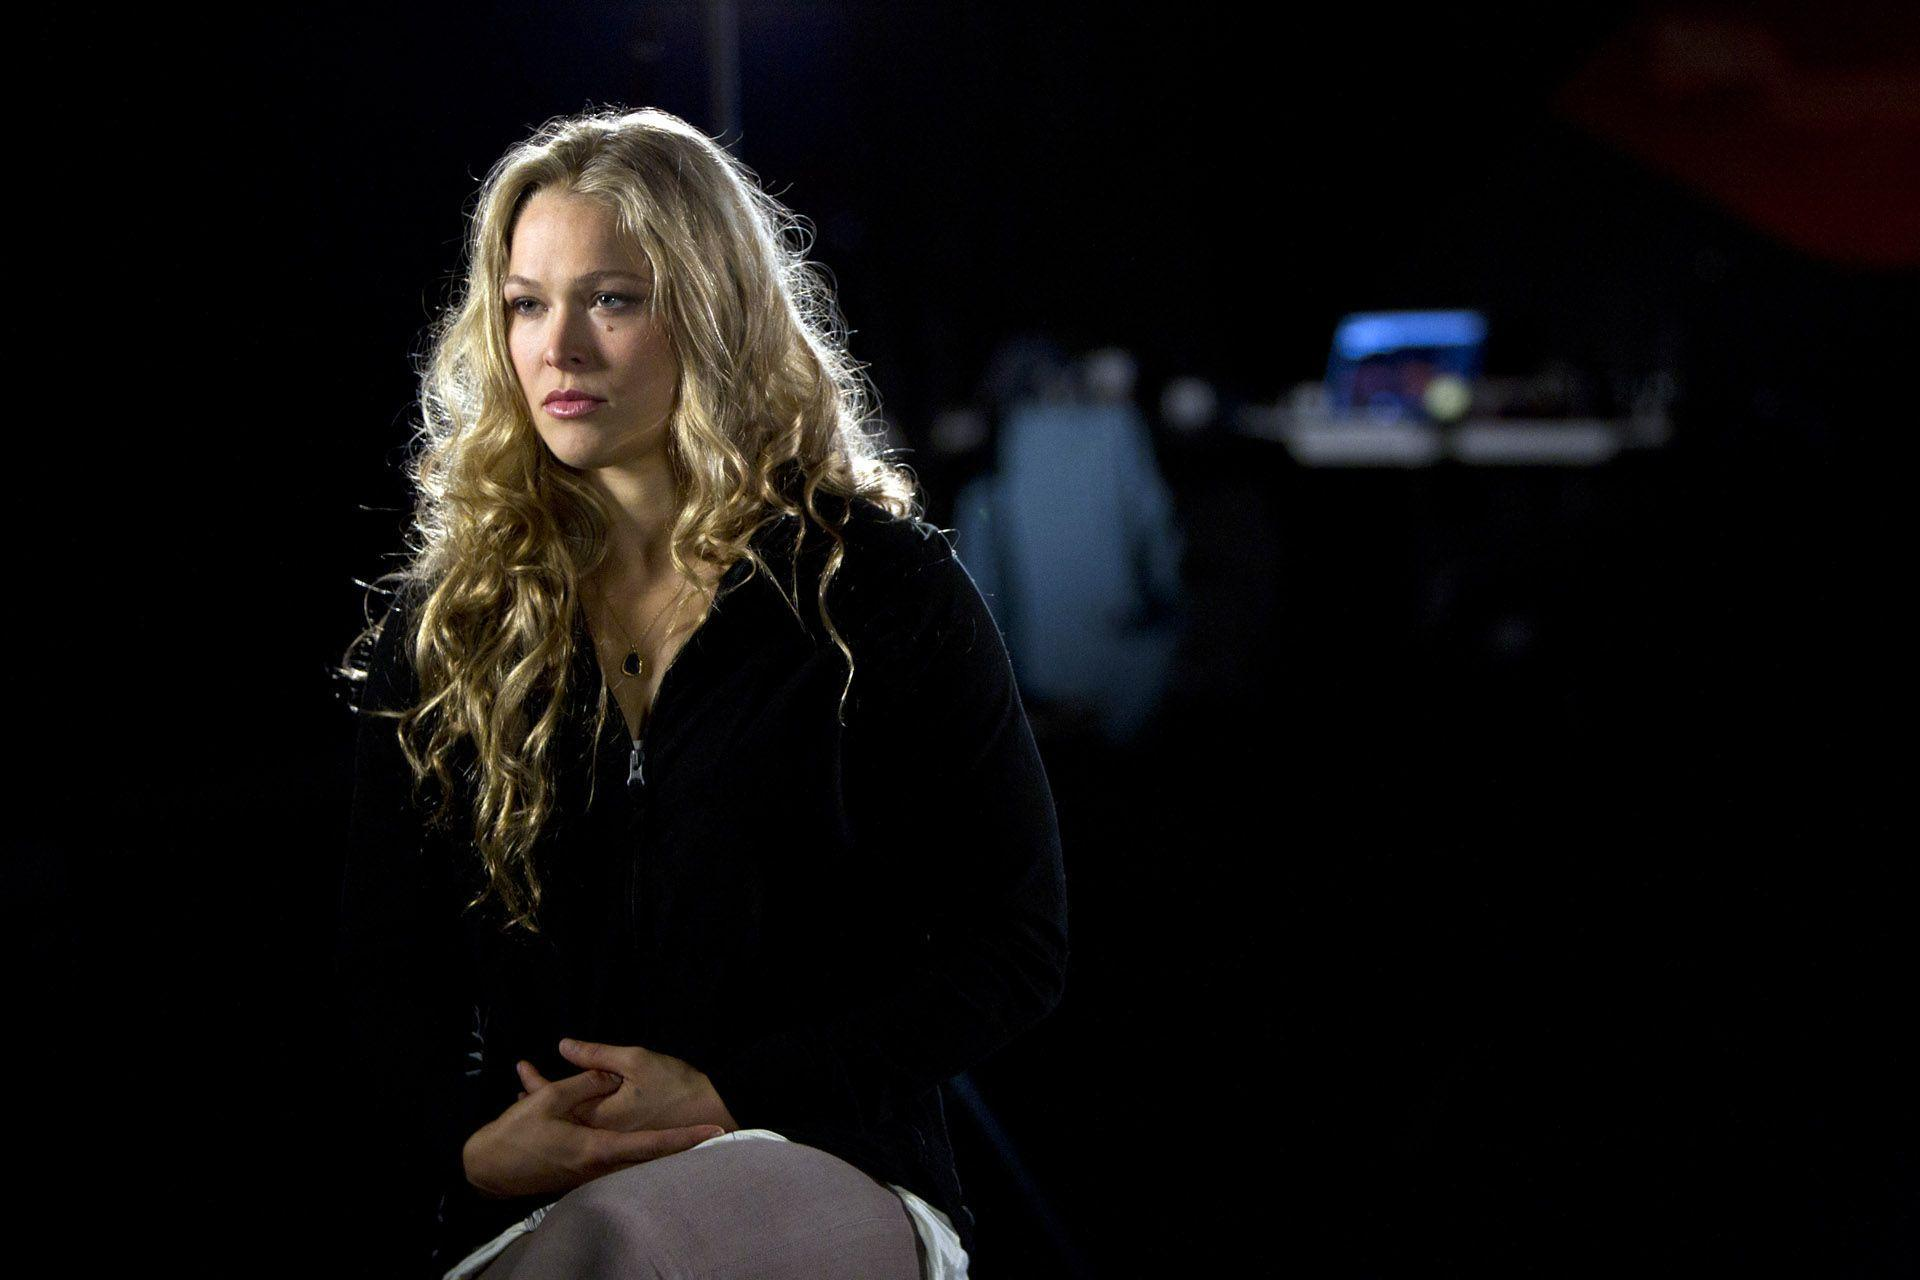 Ronda Rousey HD Wallpapers for desktop download